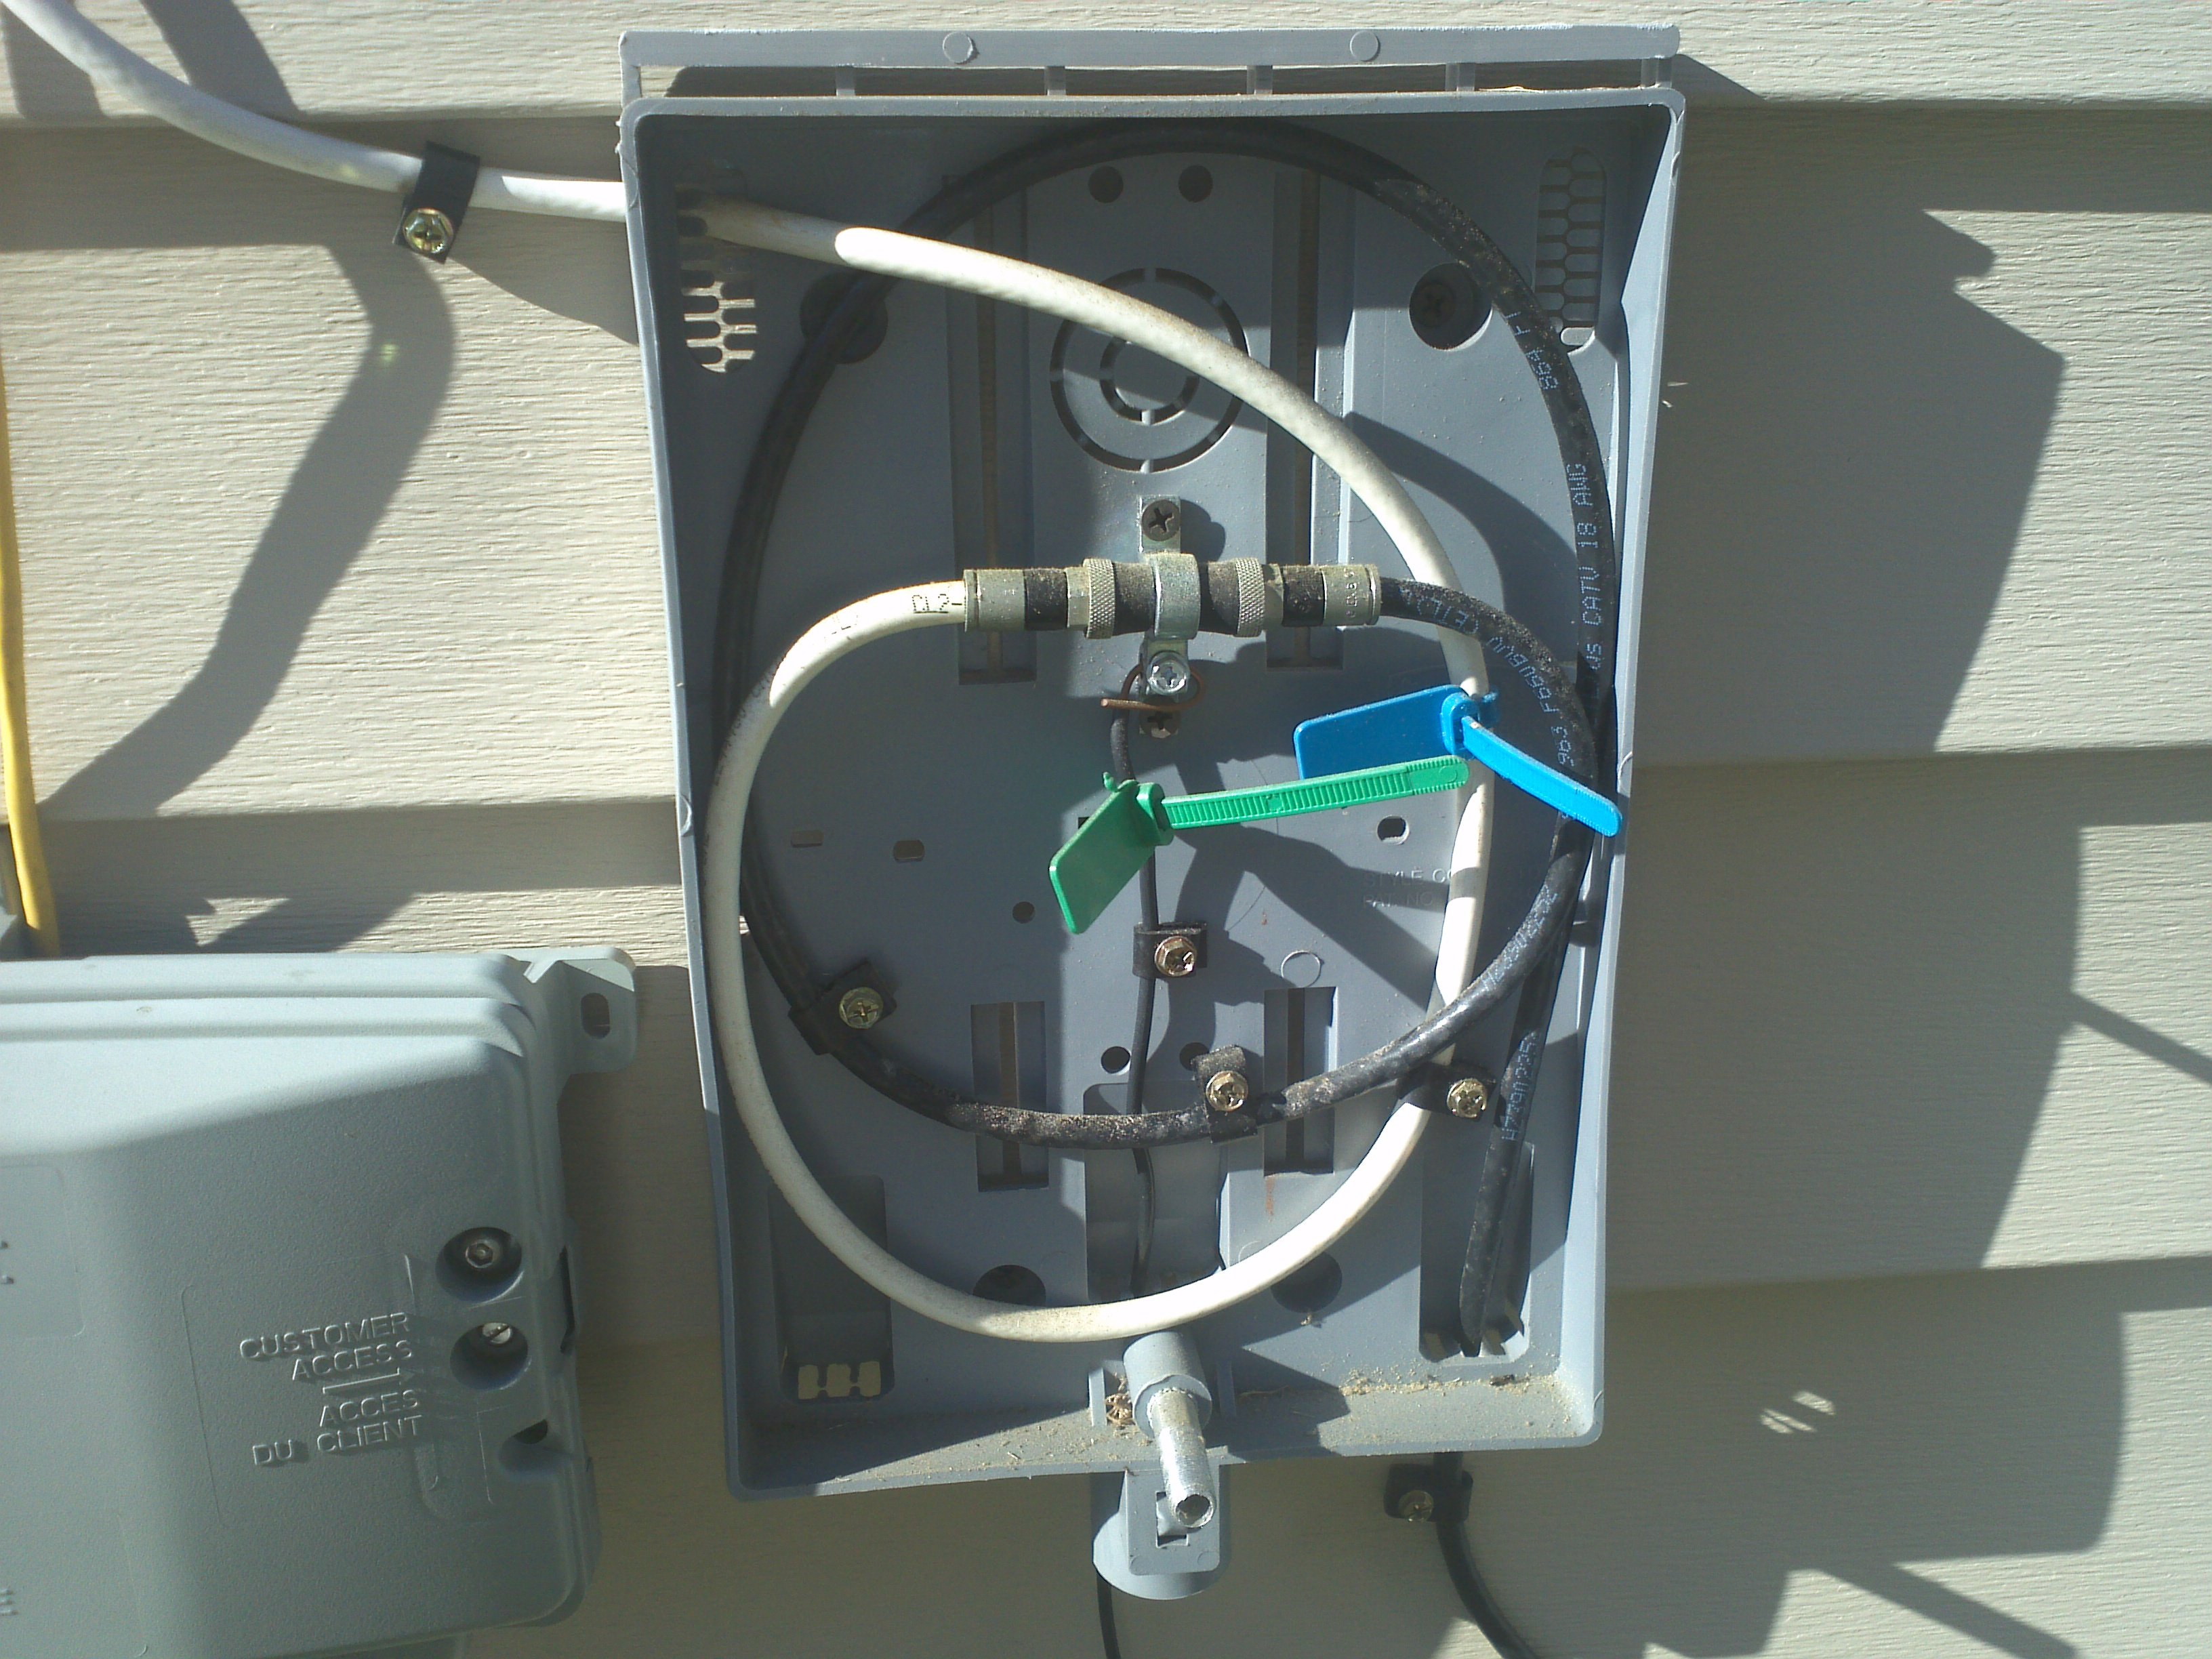 Exterior Cable Tv Junction Box wiring How do I properly feed coax